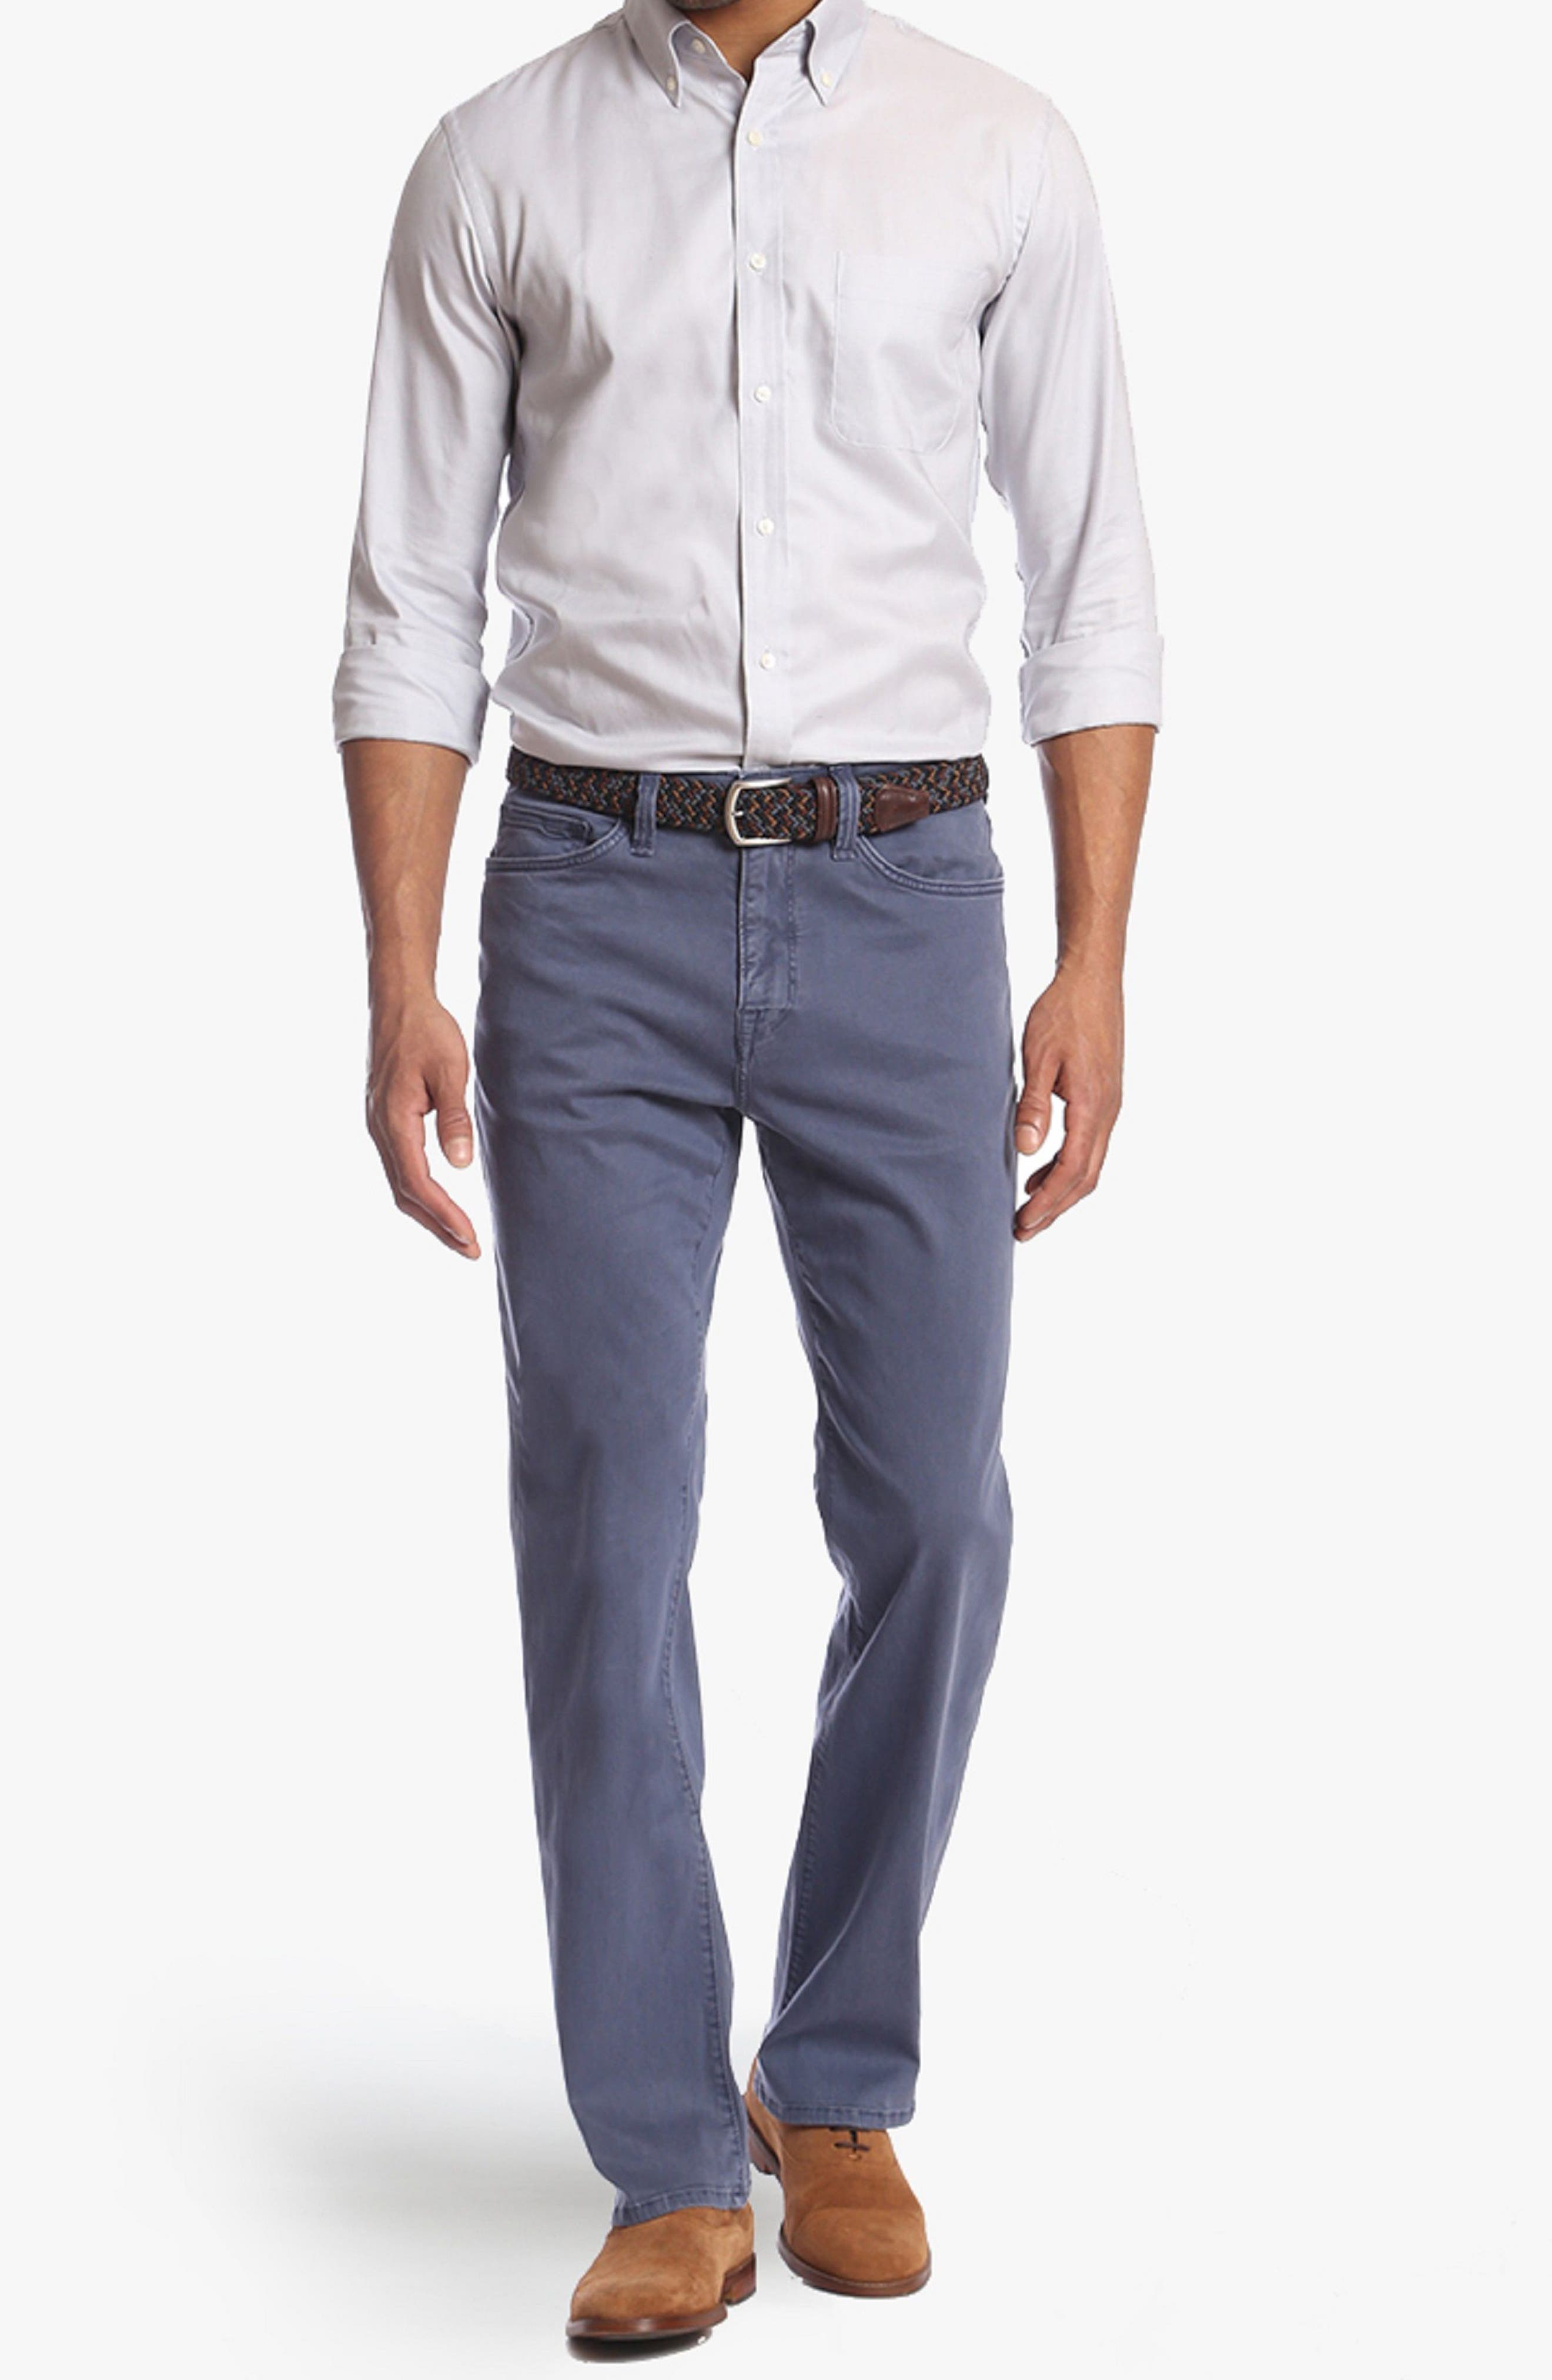 Charisma Relaxed Fit Jeans,                             Alternate thumbnail 4, color,                             Horizon Twill